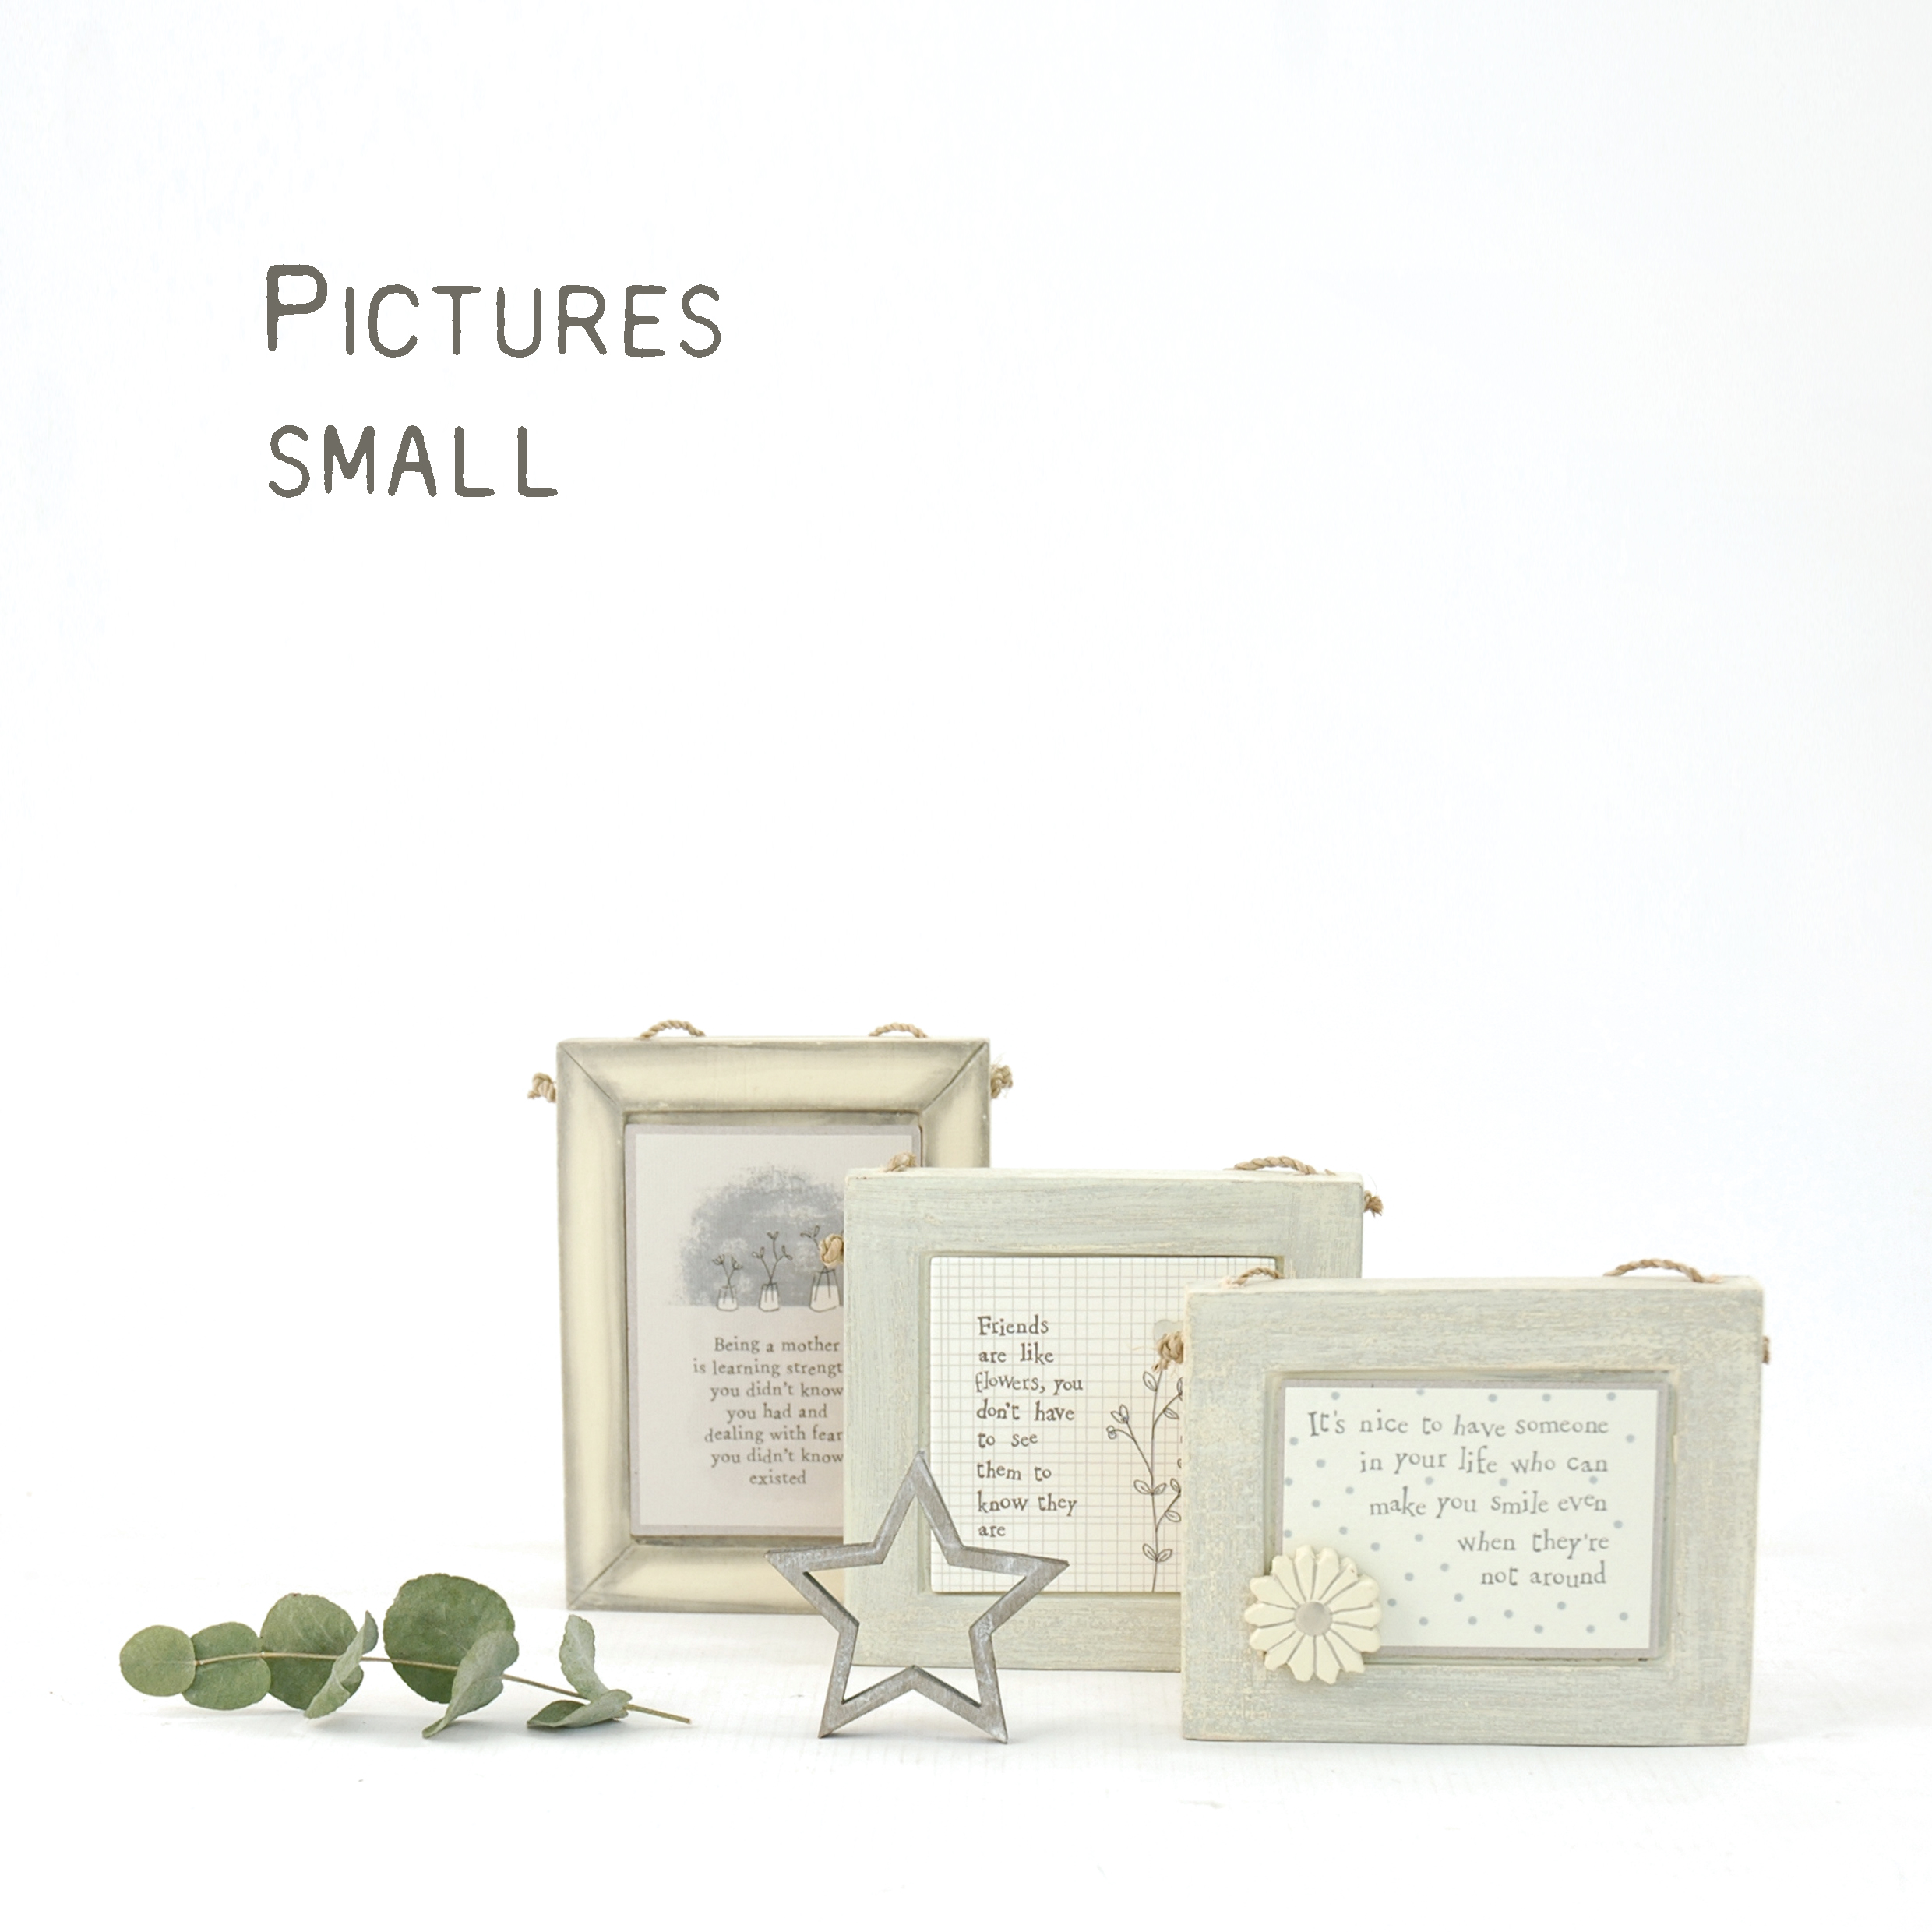 Small pictures